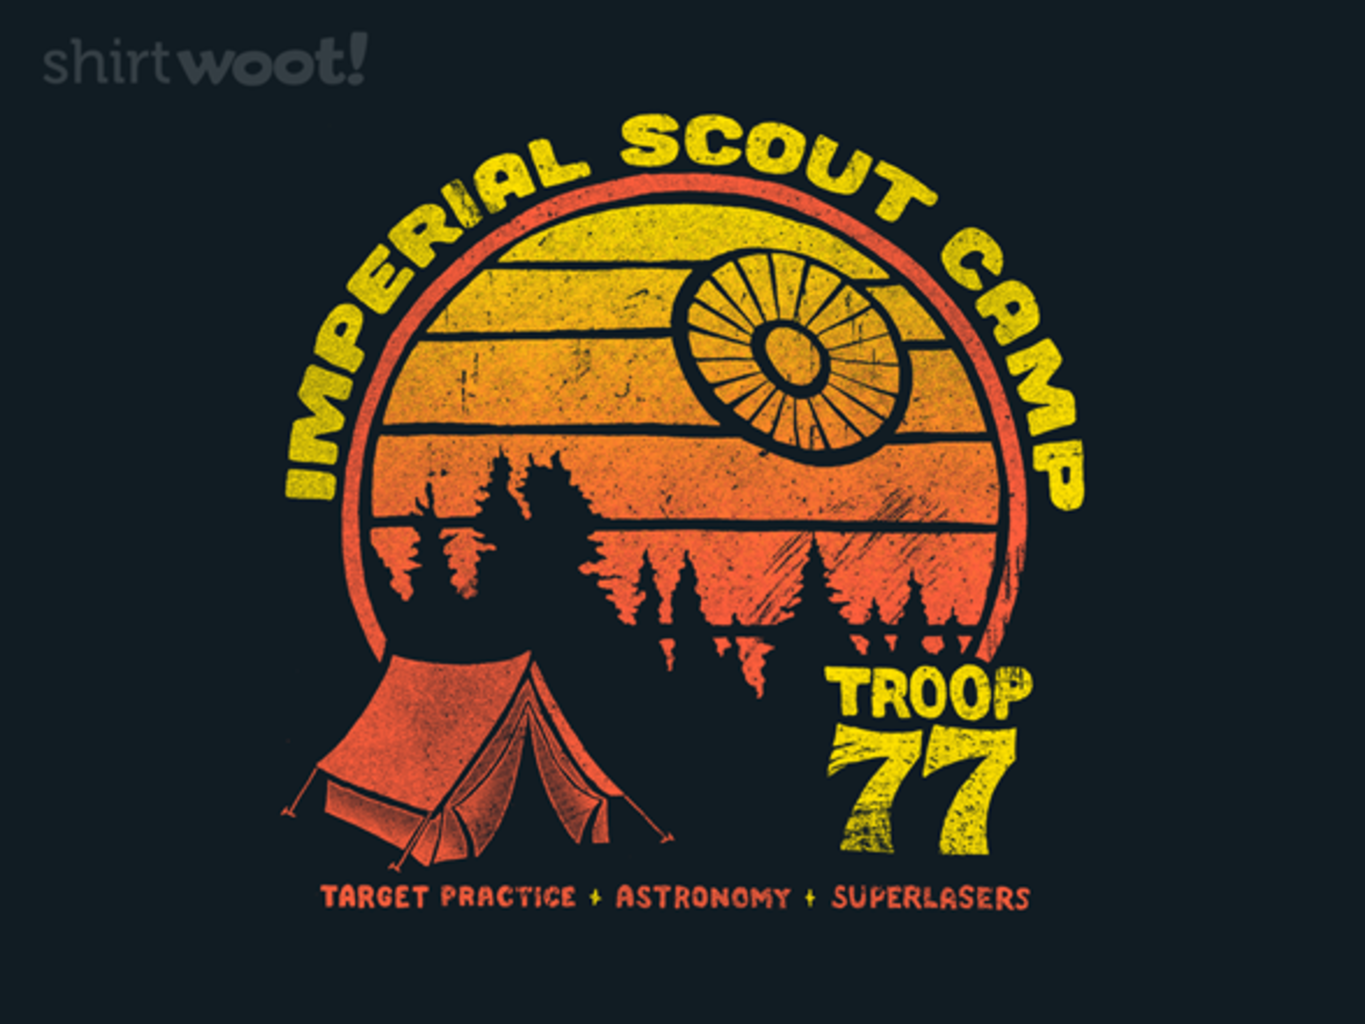 Woot!: Imperial Scout Camp